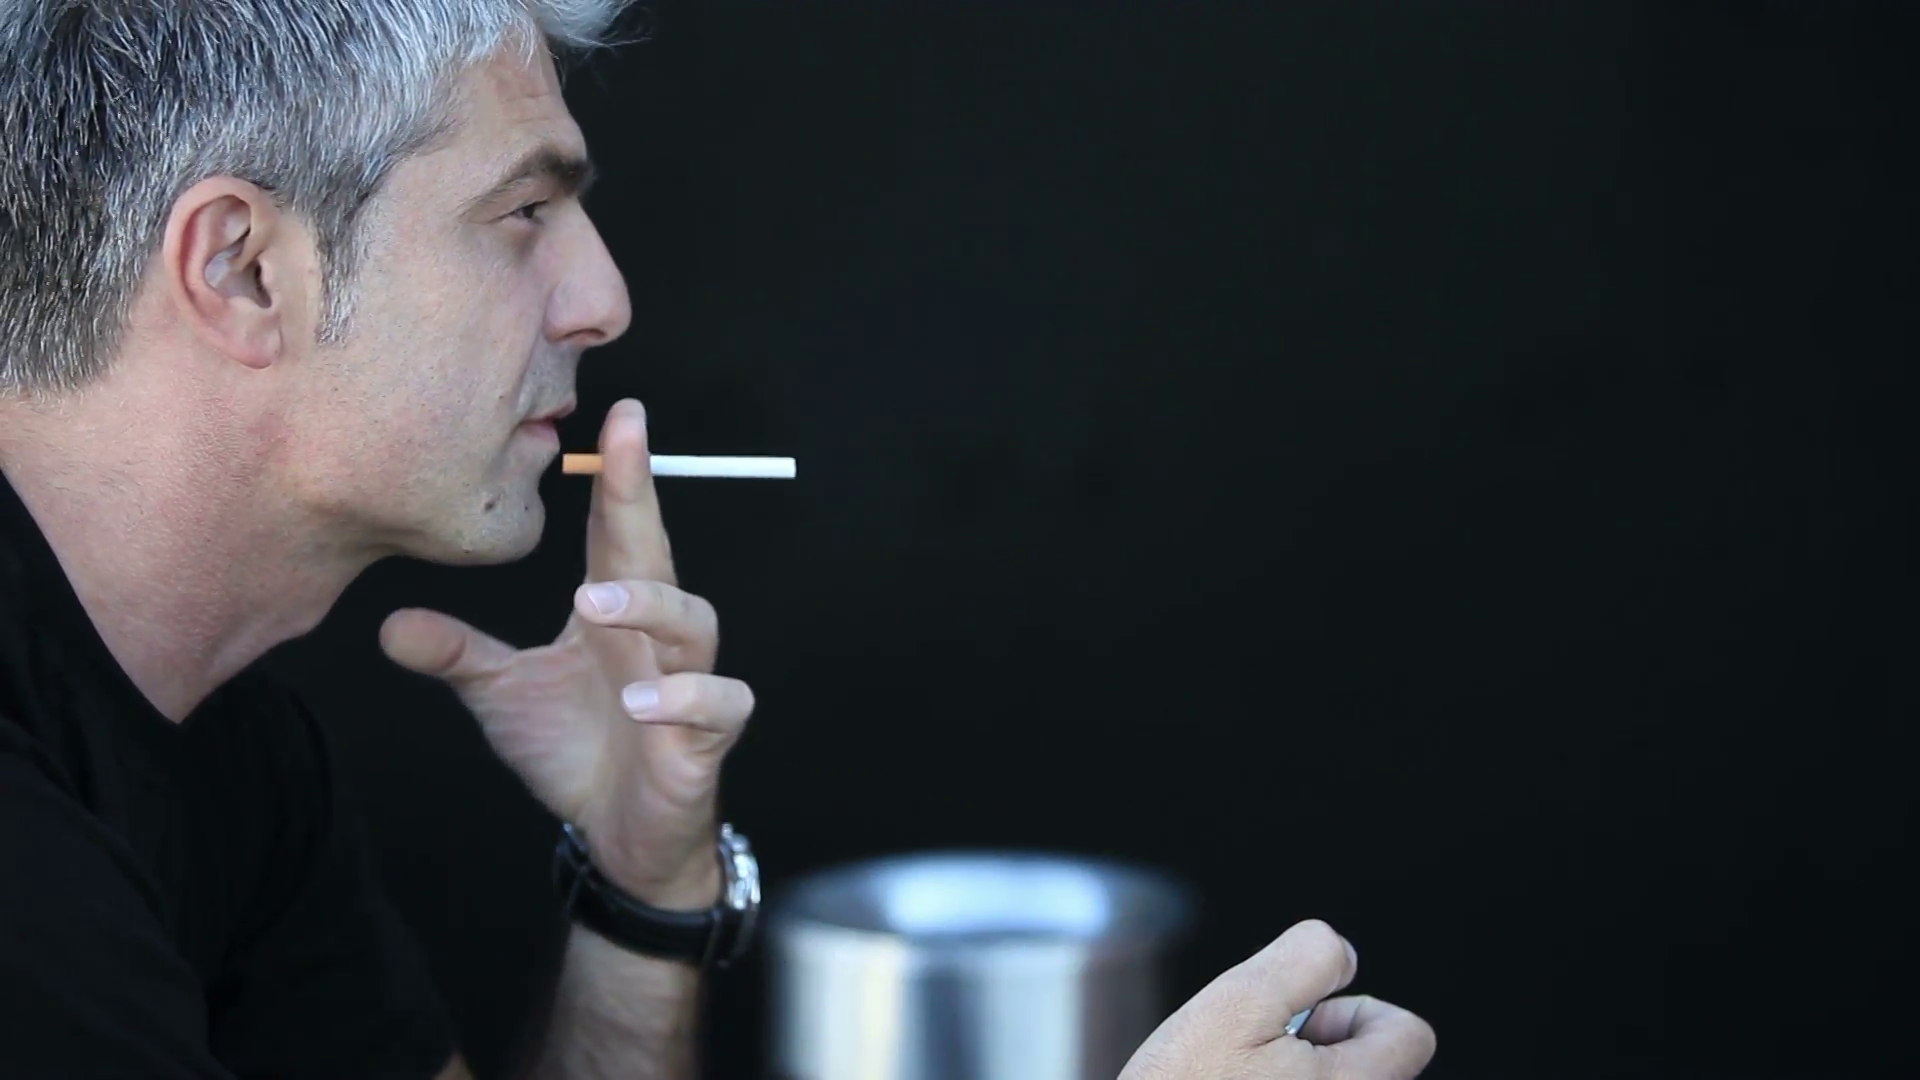 A man realizes the noxiousness of the cigarettes and decides to quit ...